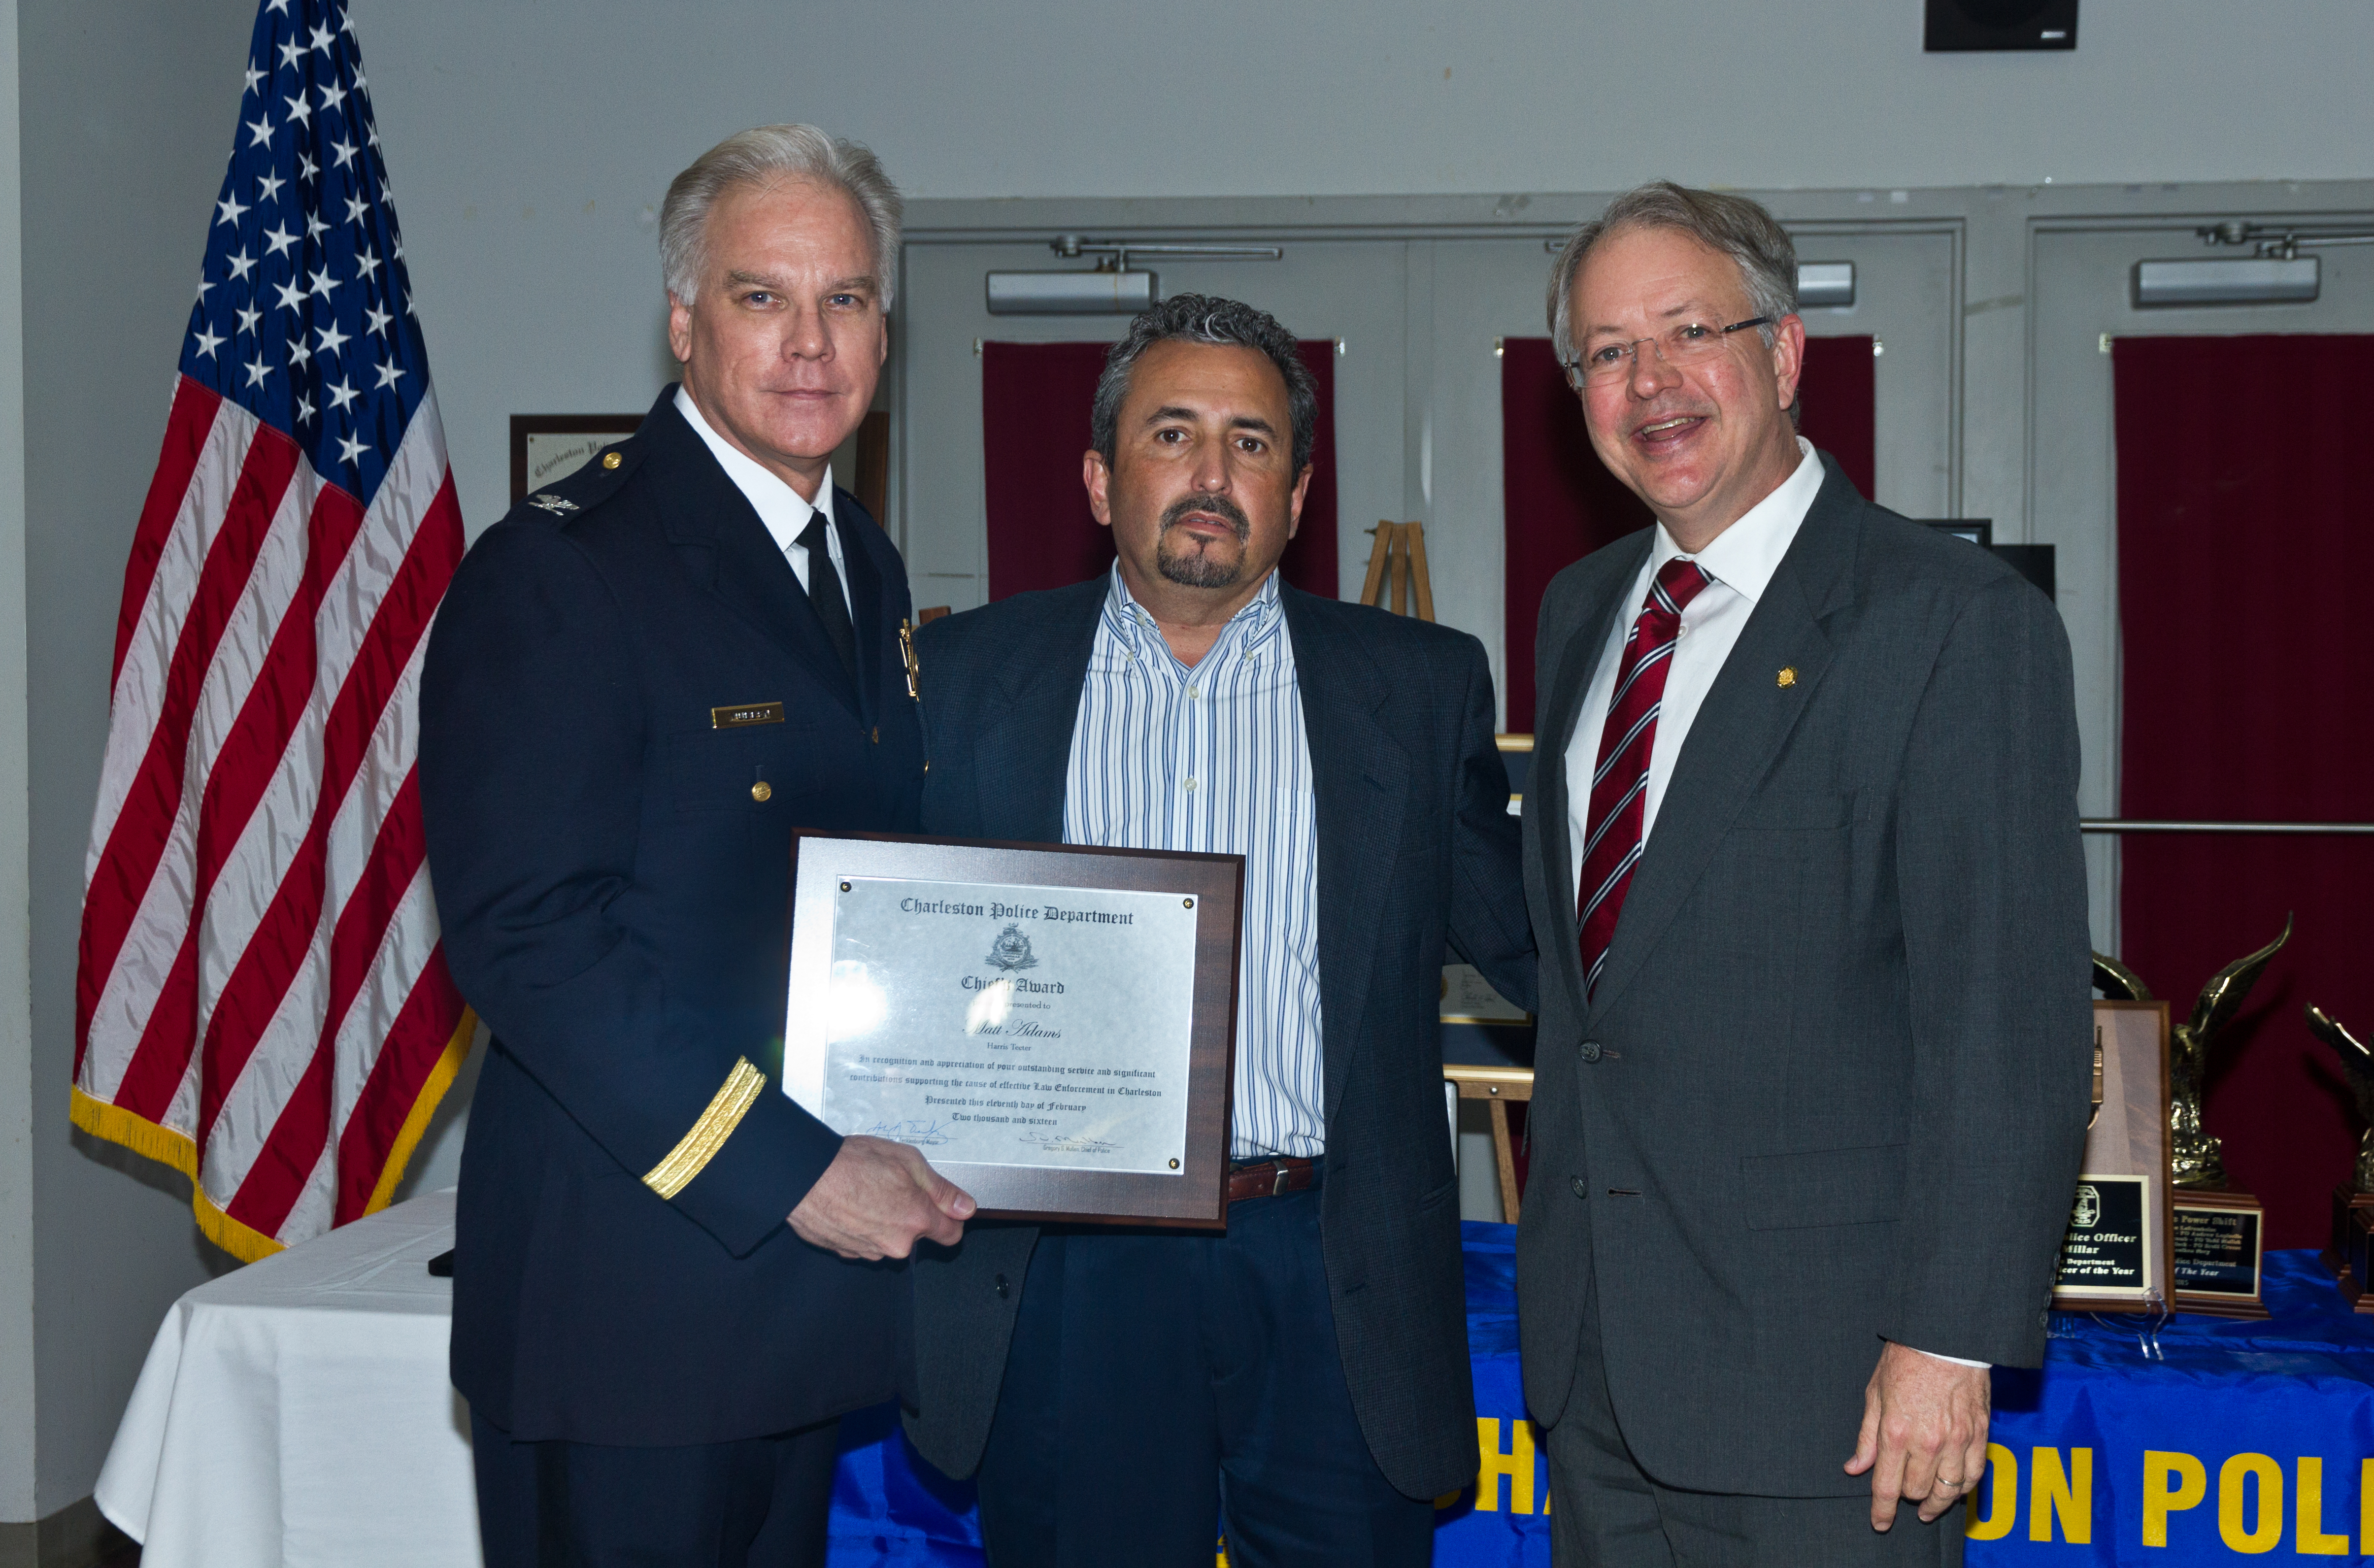 Receiving an award for support of the City of Charleston Police Department.